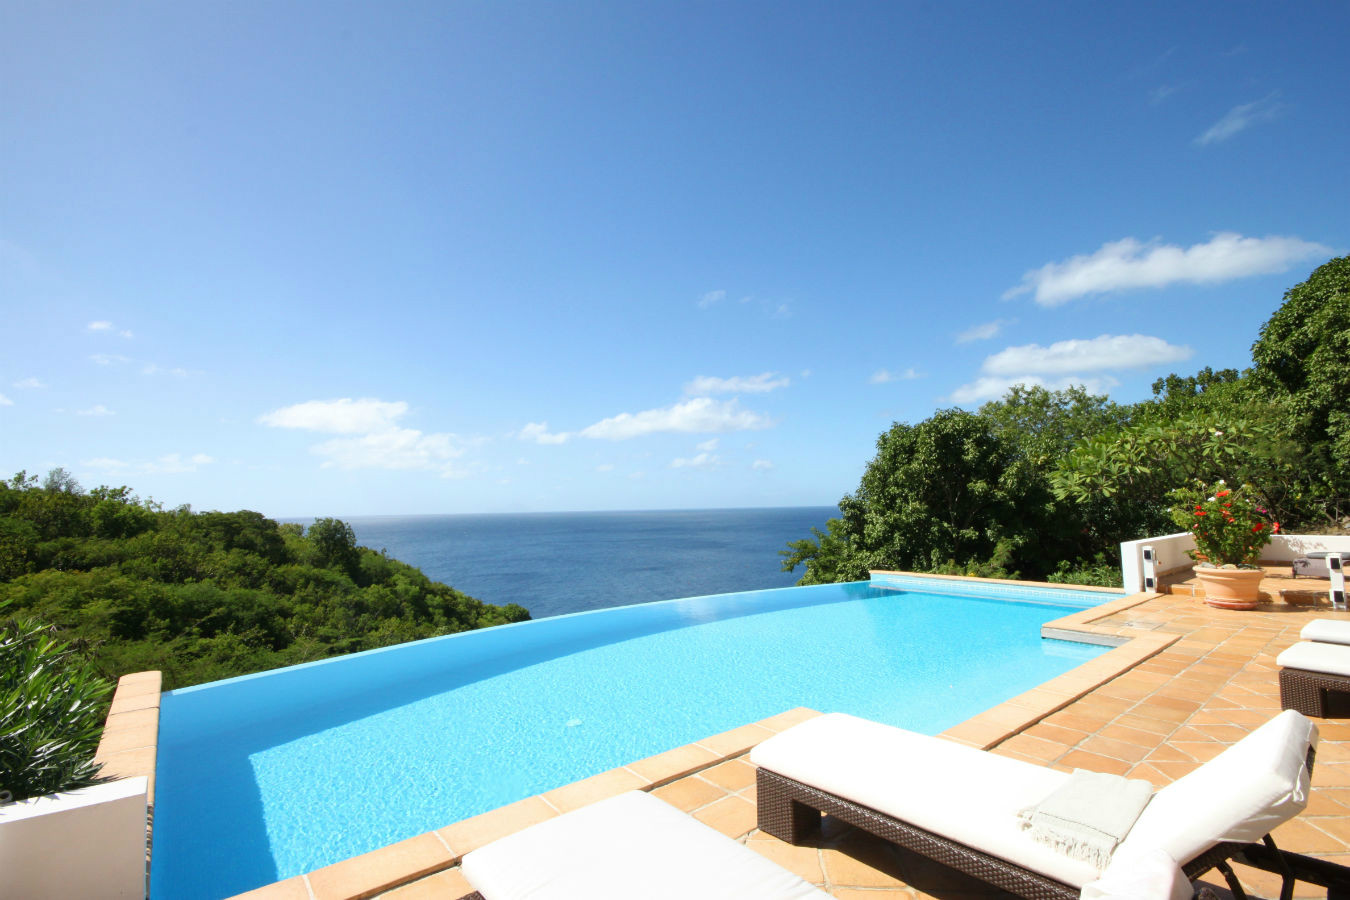 Location saint barthelemy villa de charme vue mer avec for Piscine saintes